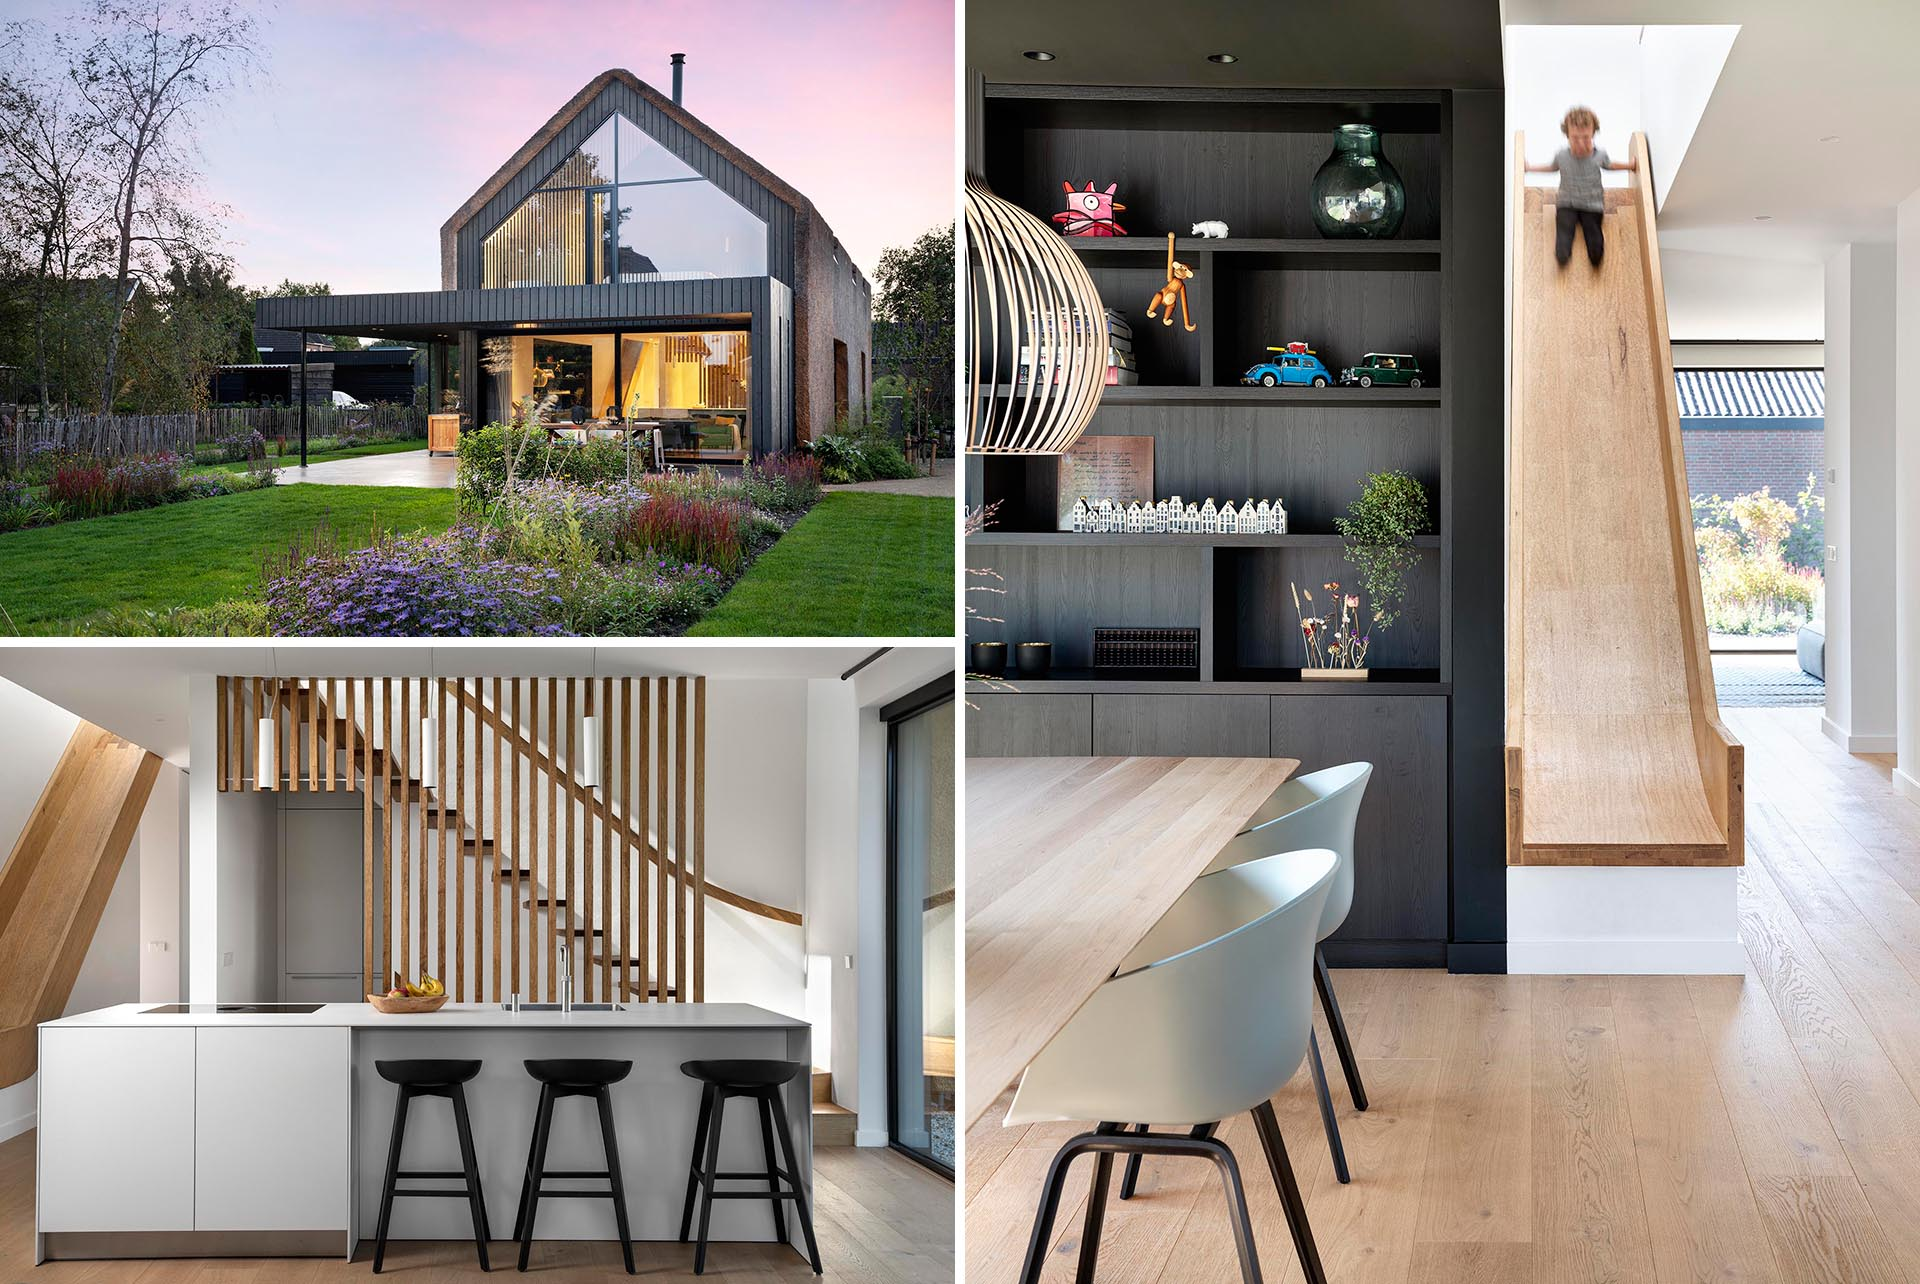 A Thatched Roof And An Indoor Slide Give This Home Plenty Of Unique Character